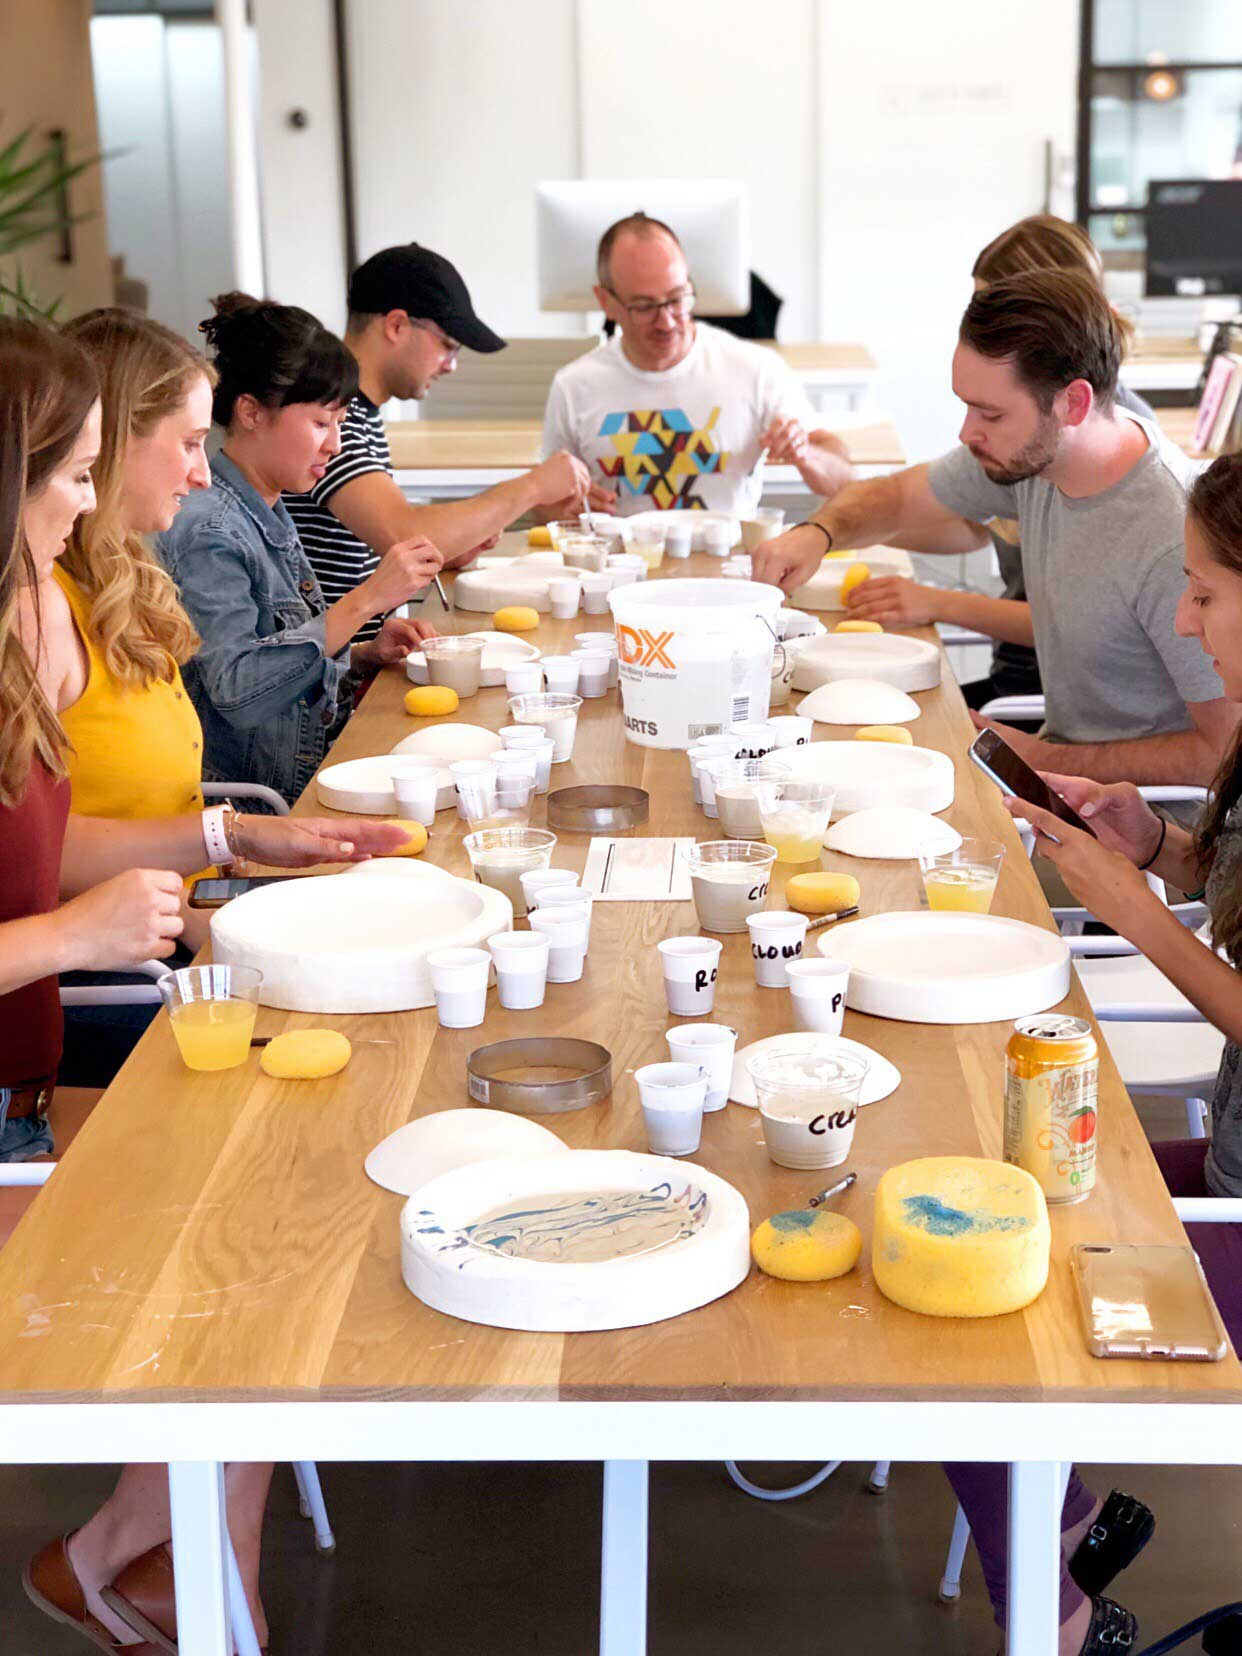 group of people sitting at a table filled with pottery supplies